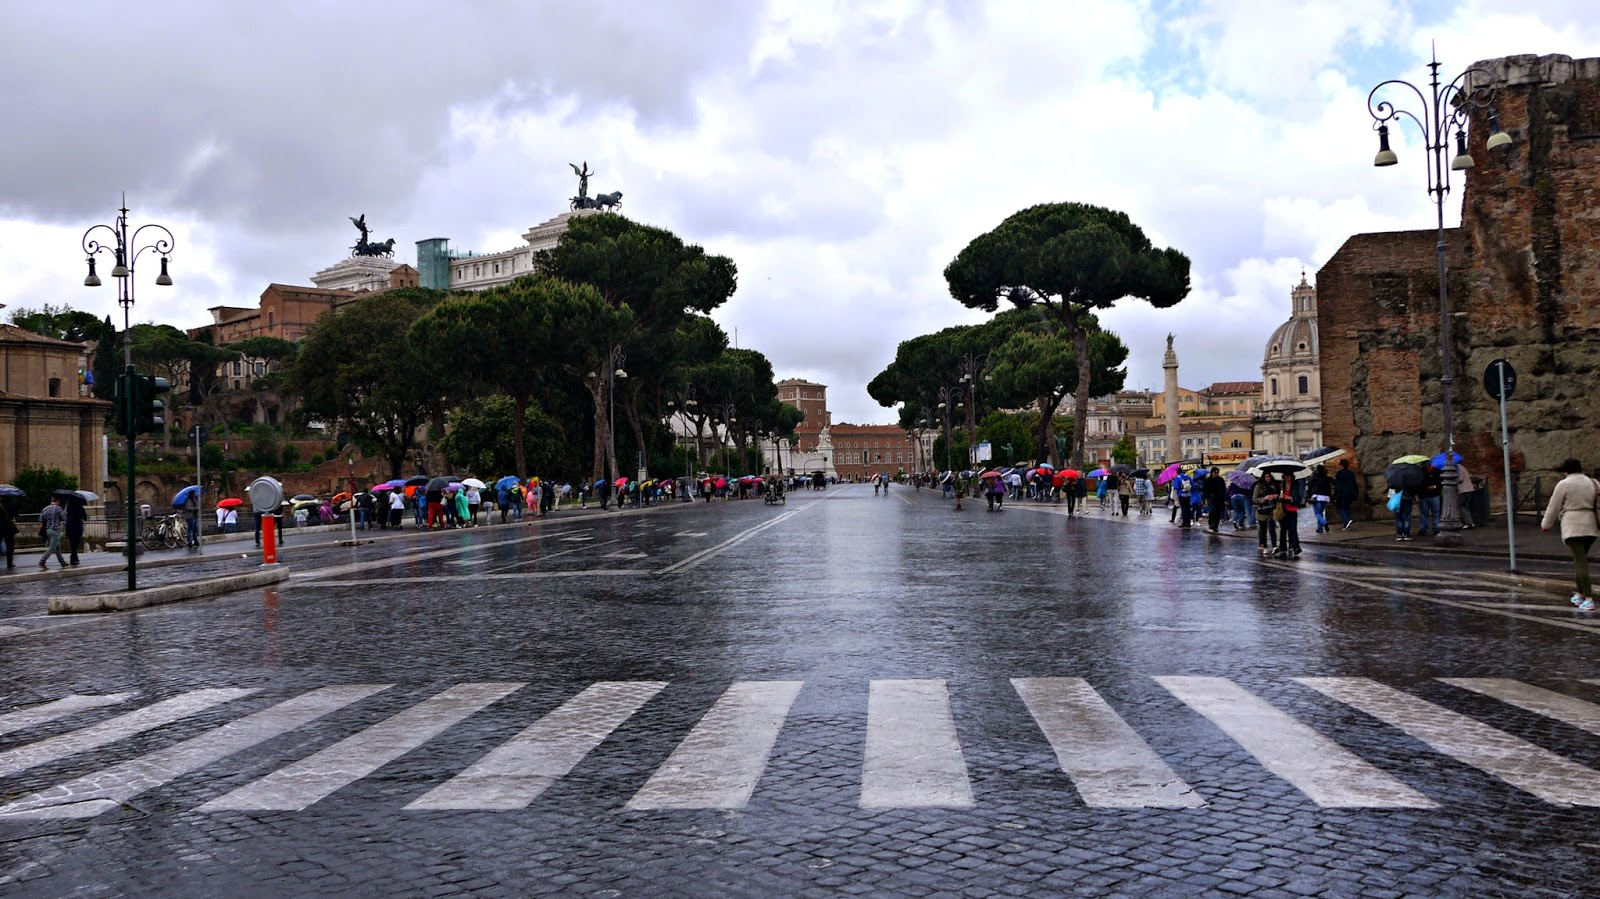 Wet street in Rome after the rain